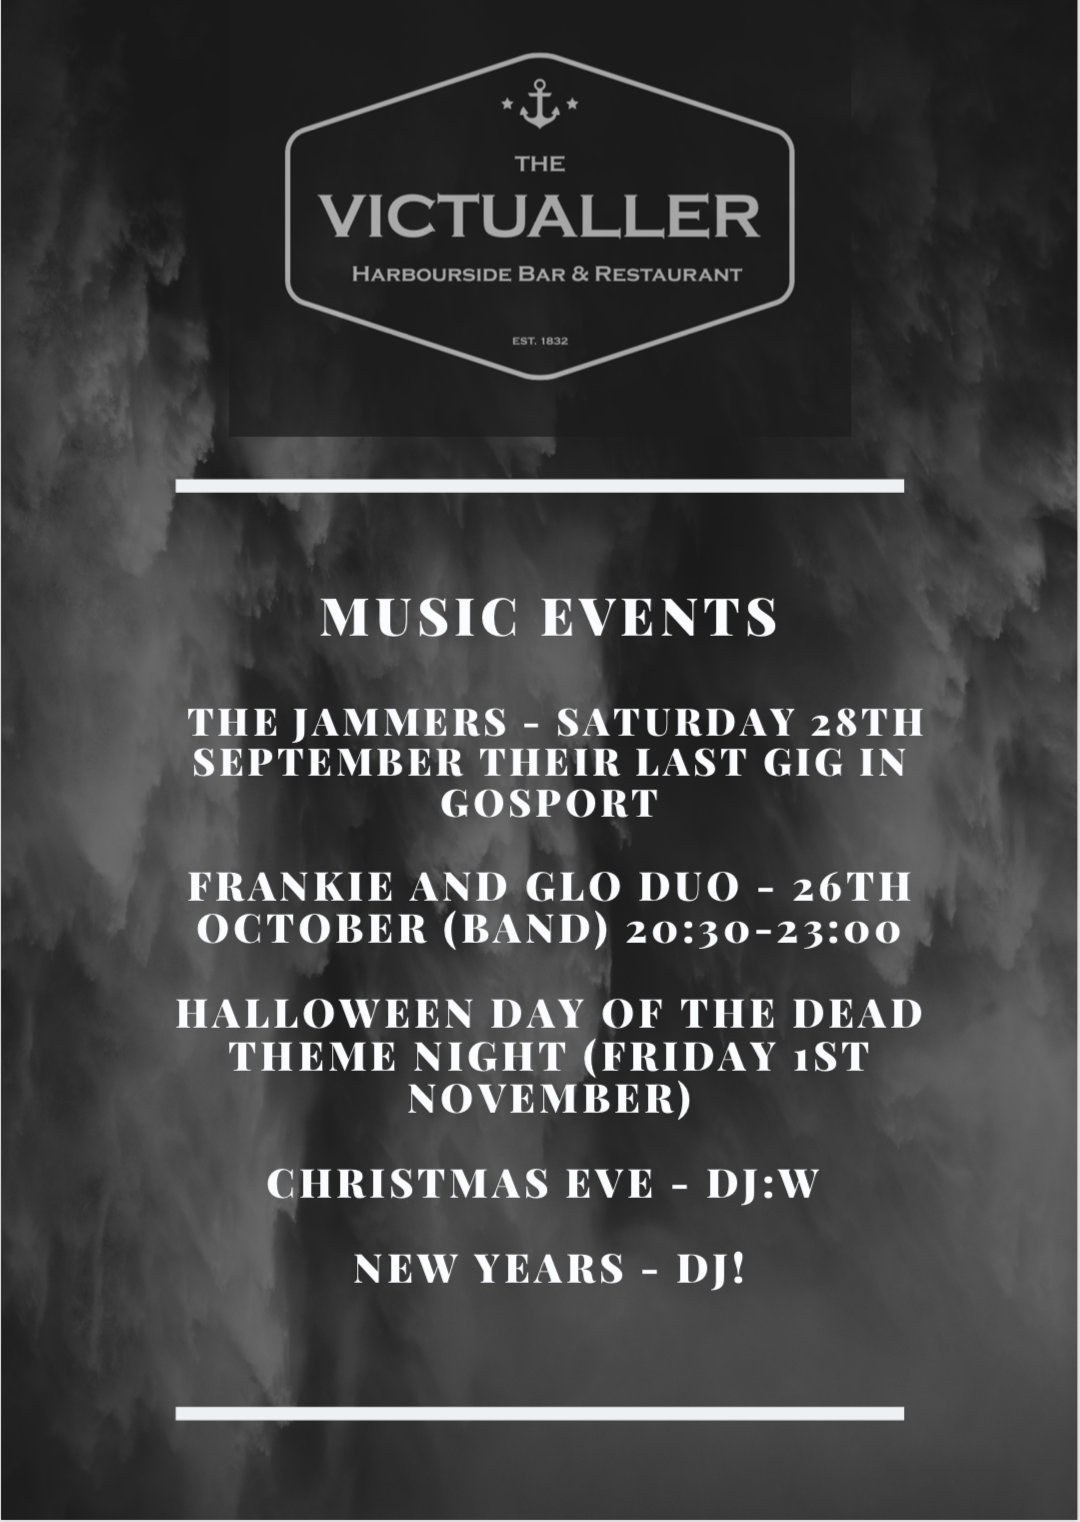 MUSIC AT THE VICTUALLER - We have a whole host of music events coming up …